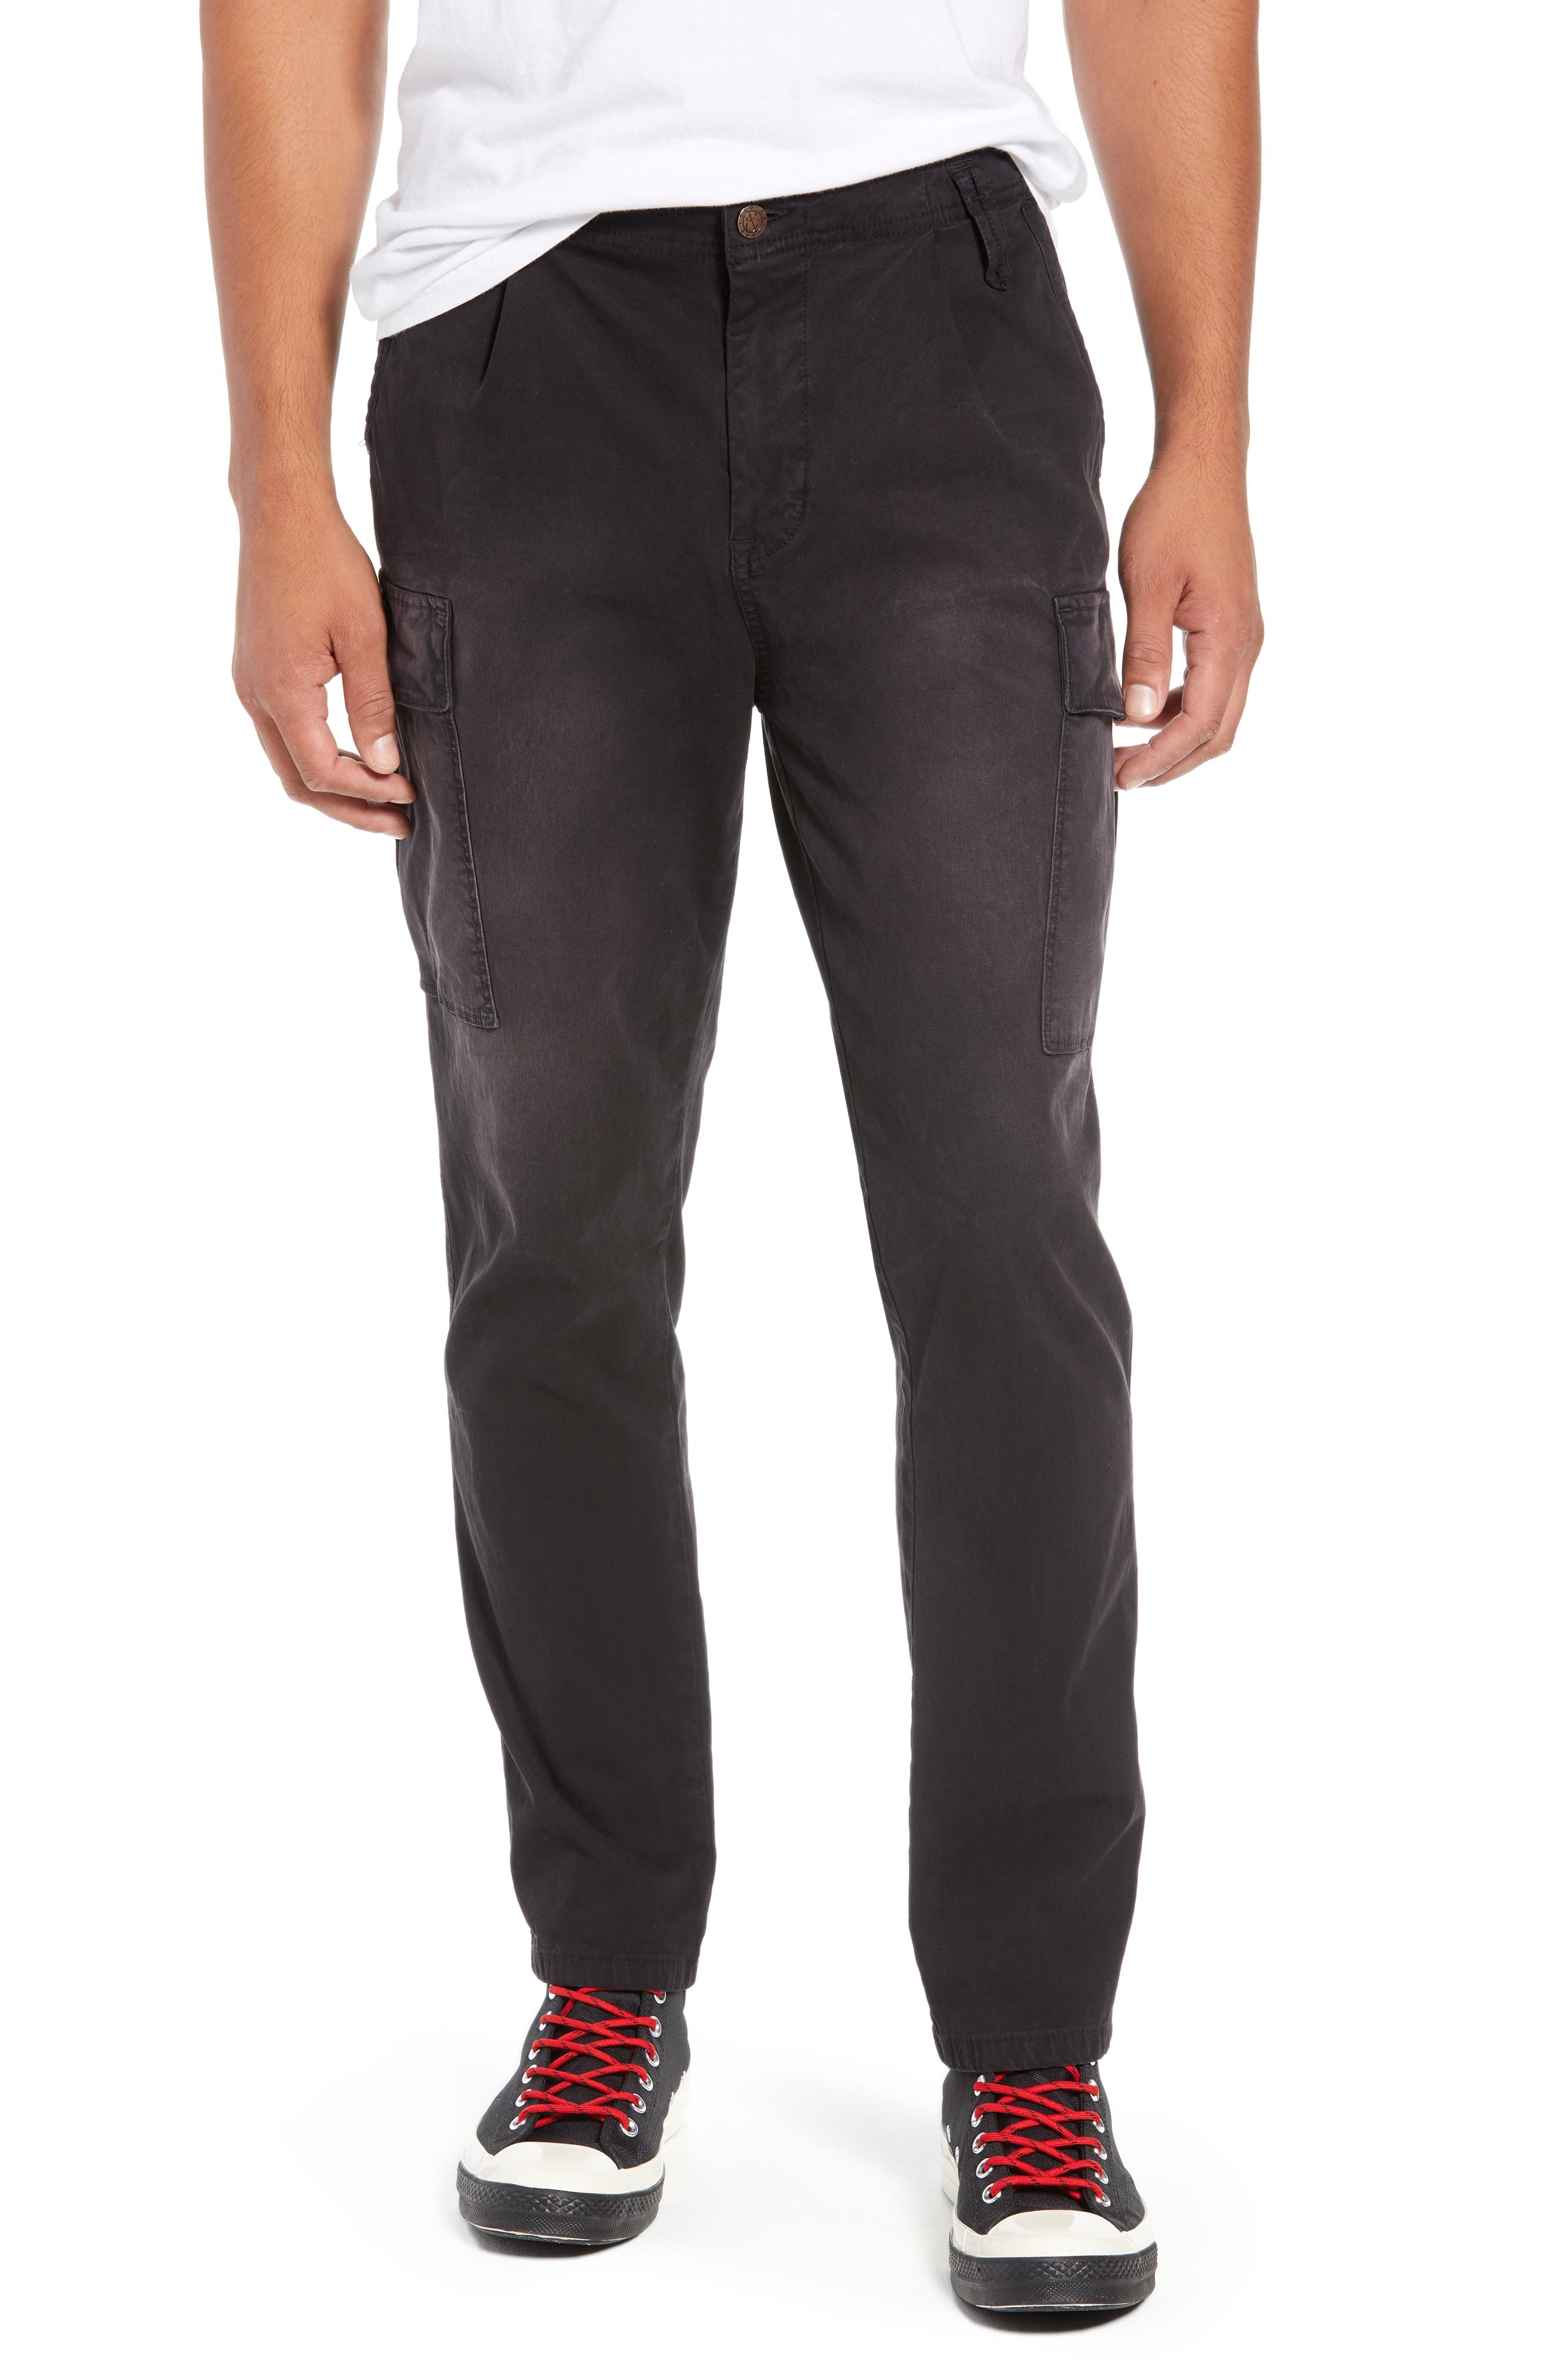 Scotch & Soda Loose Taper Fit Washed Cargo Pants, Grey